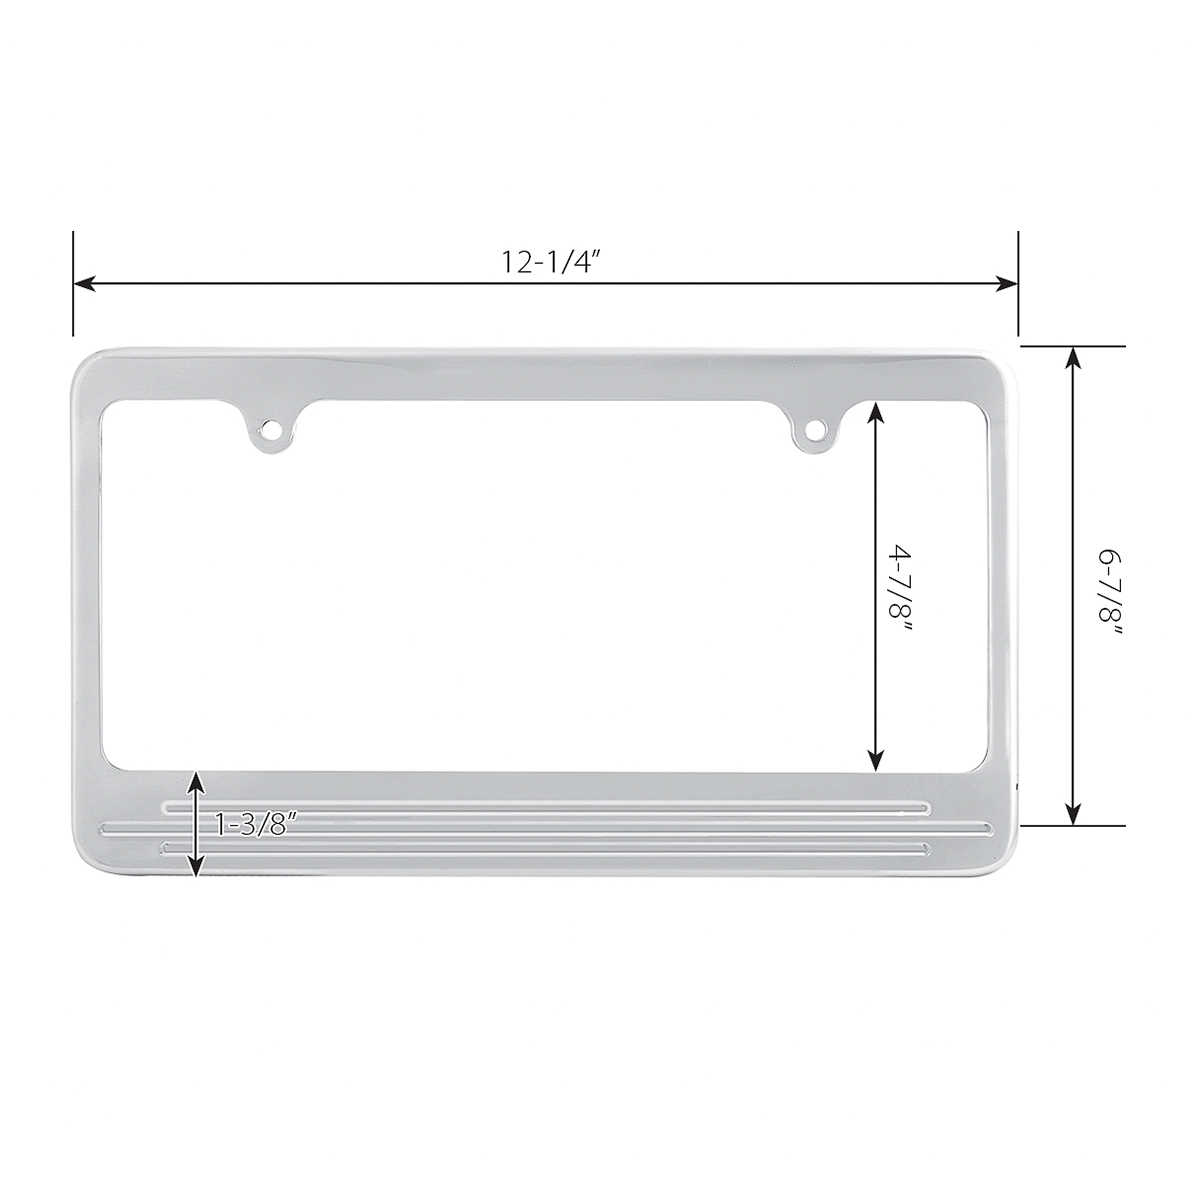 60473 Aluminum License Plate Frame with 2 Holes - Measurements